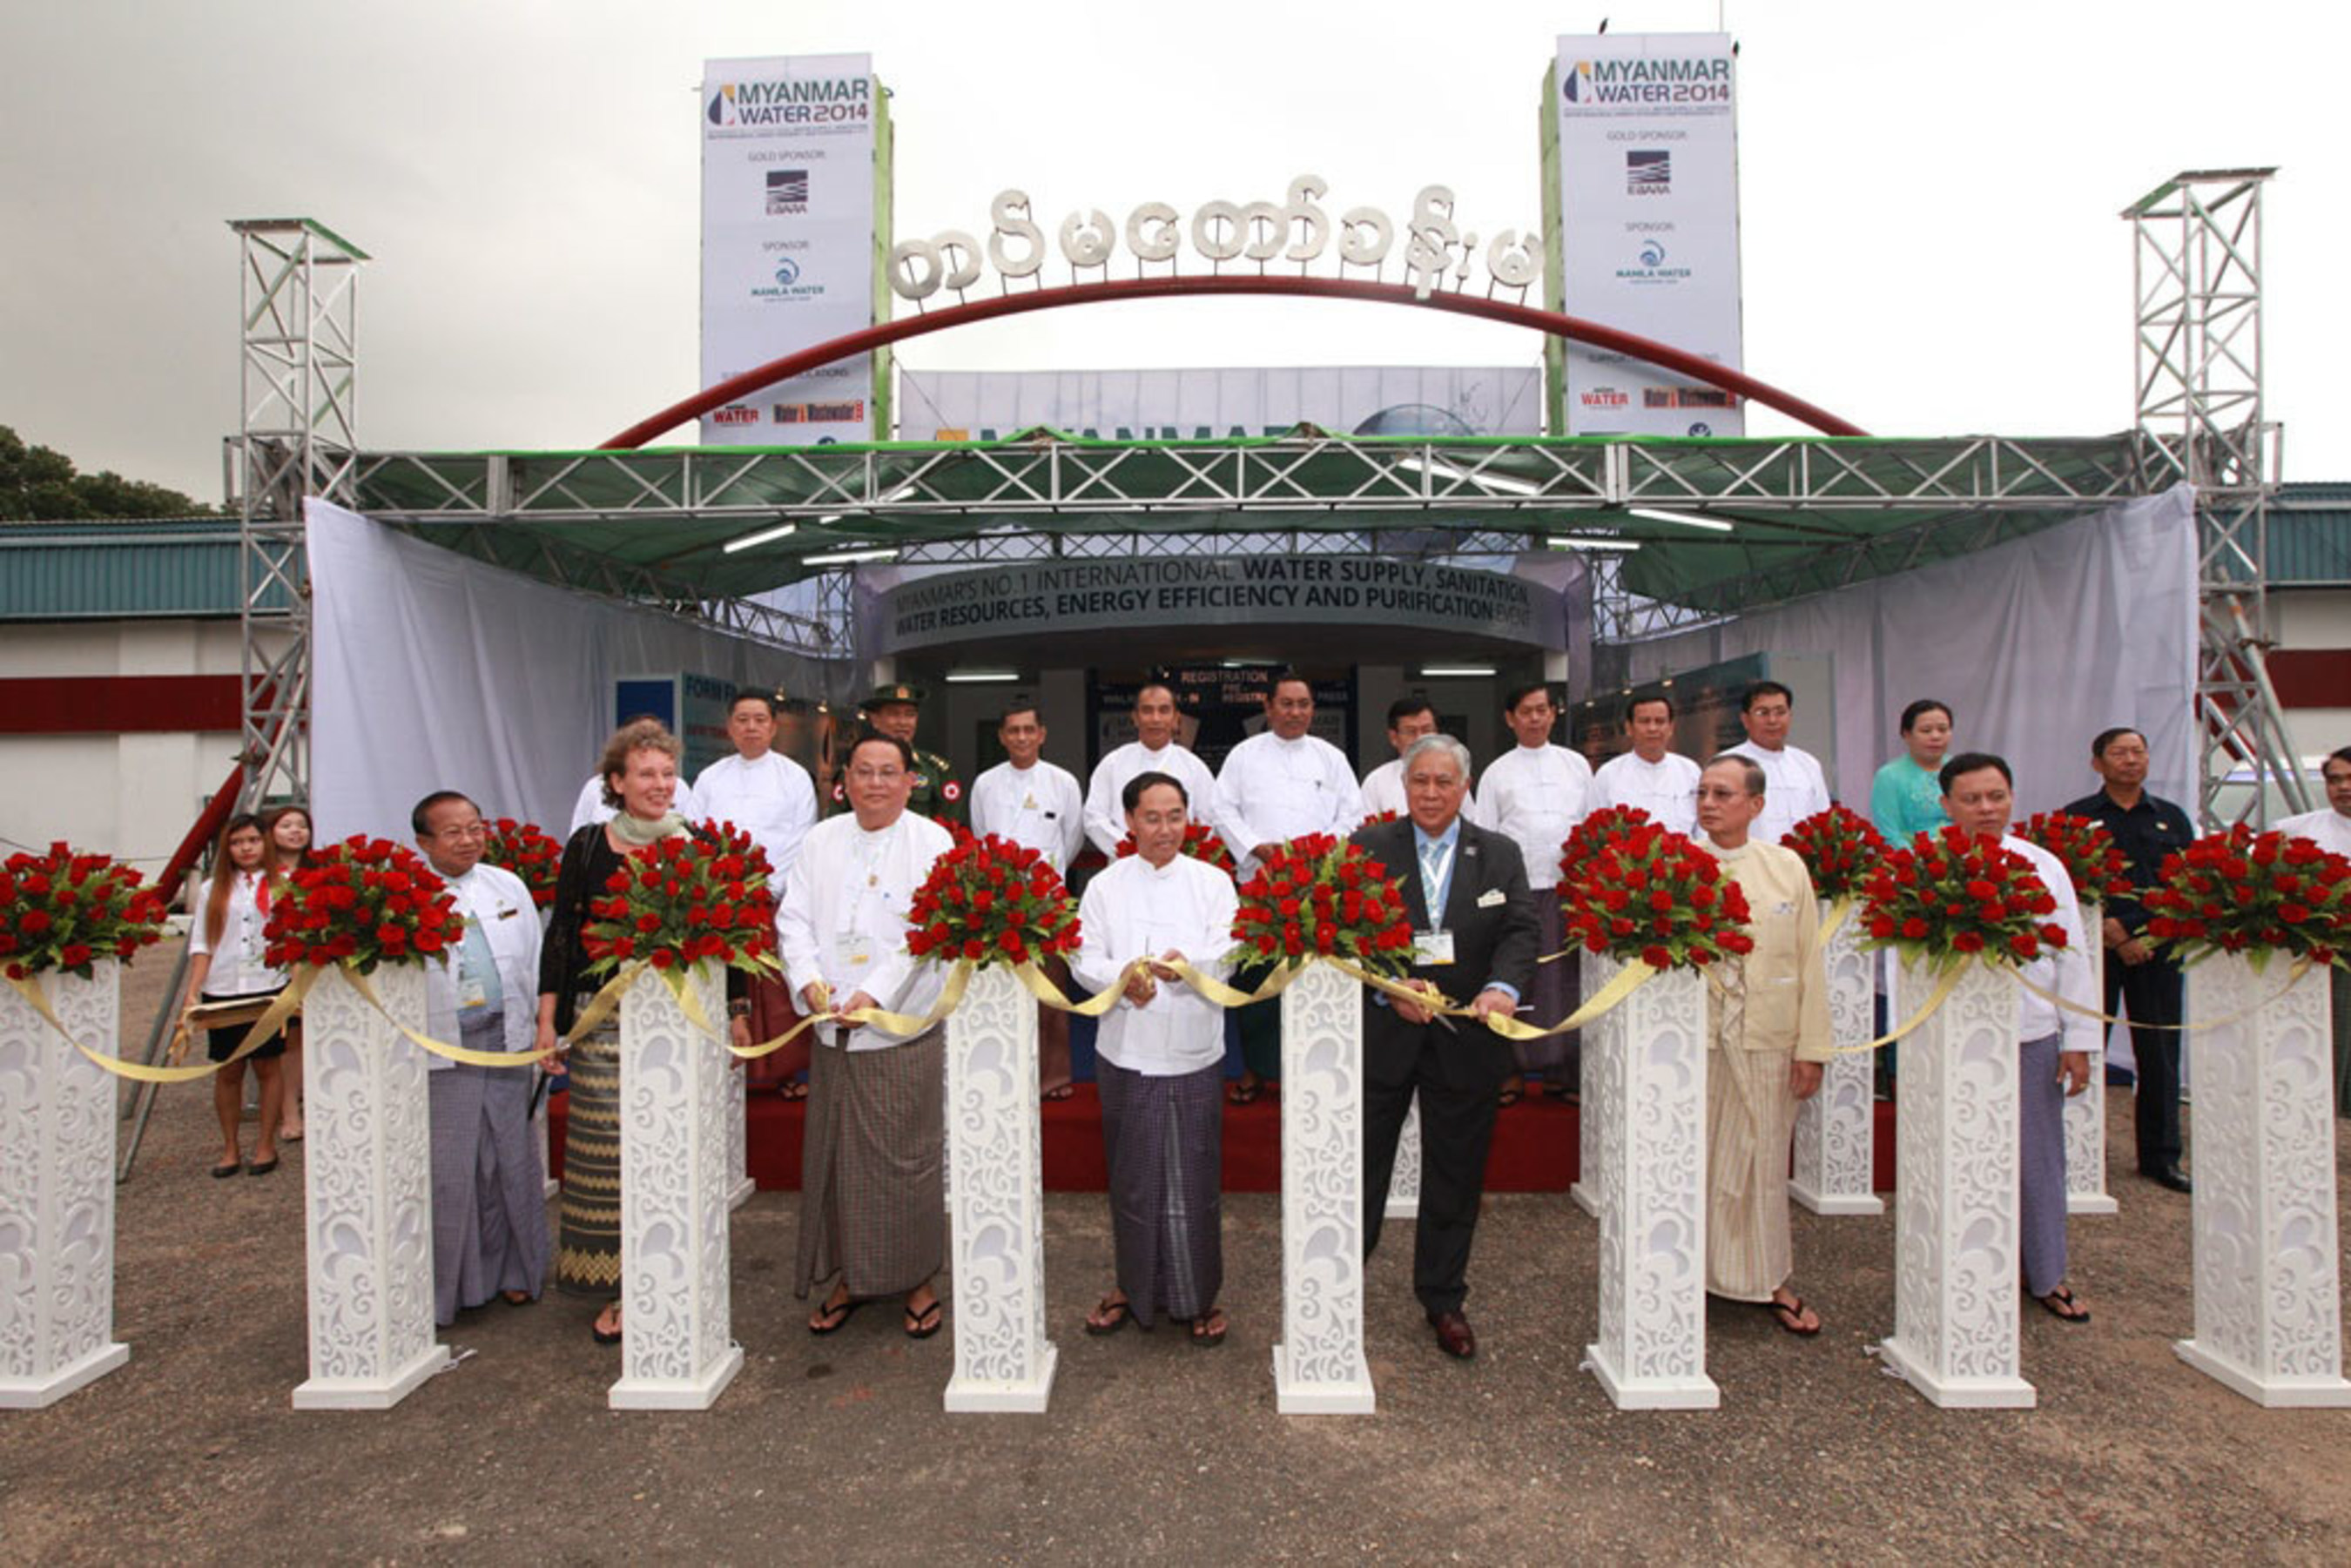 MyanmarWater 2014 Event Thrives on Water Industry and